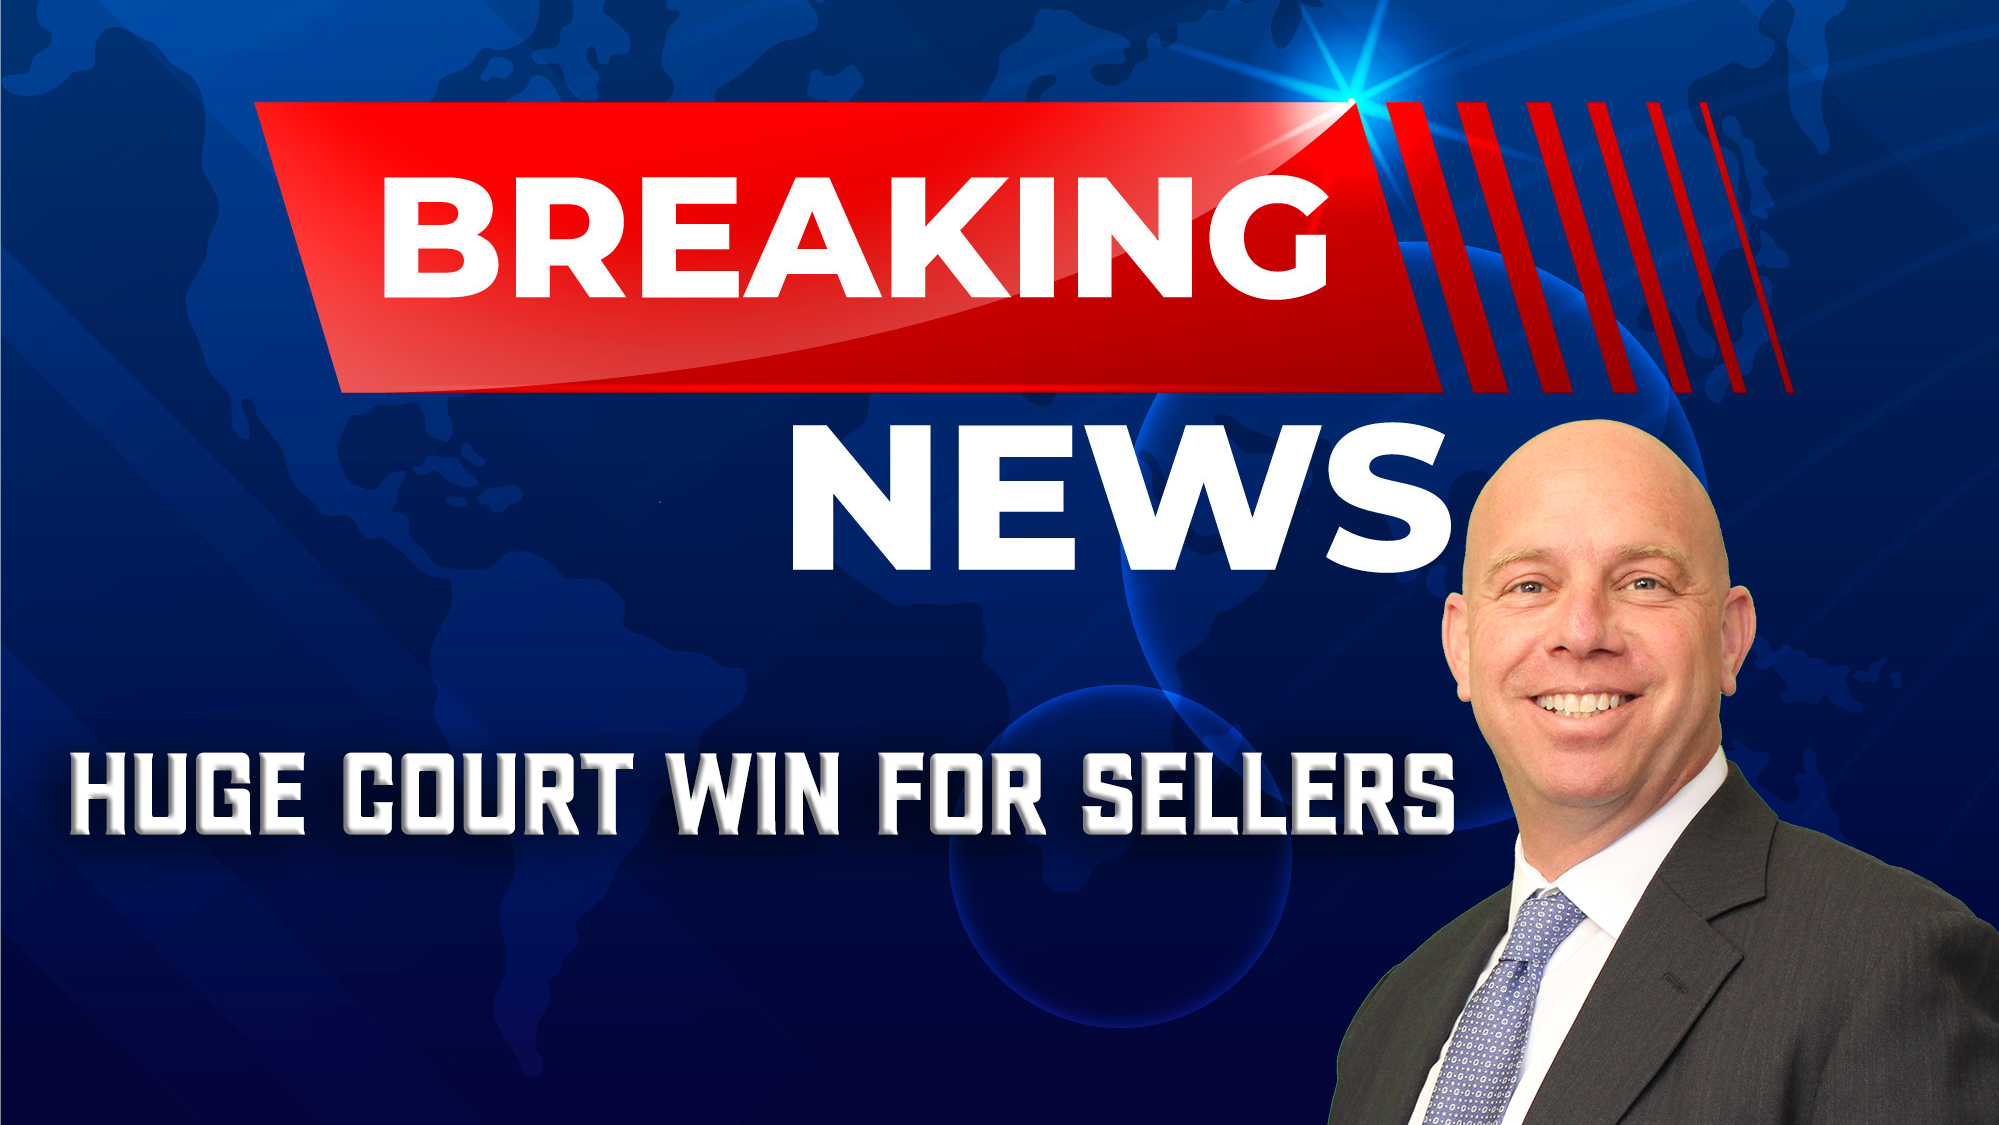 breaking news - huge court win for sellers